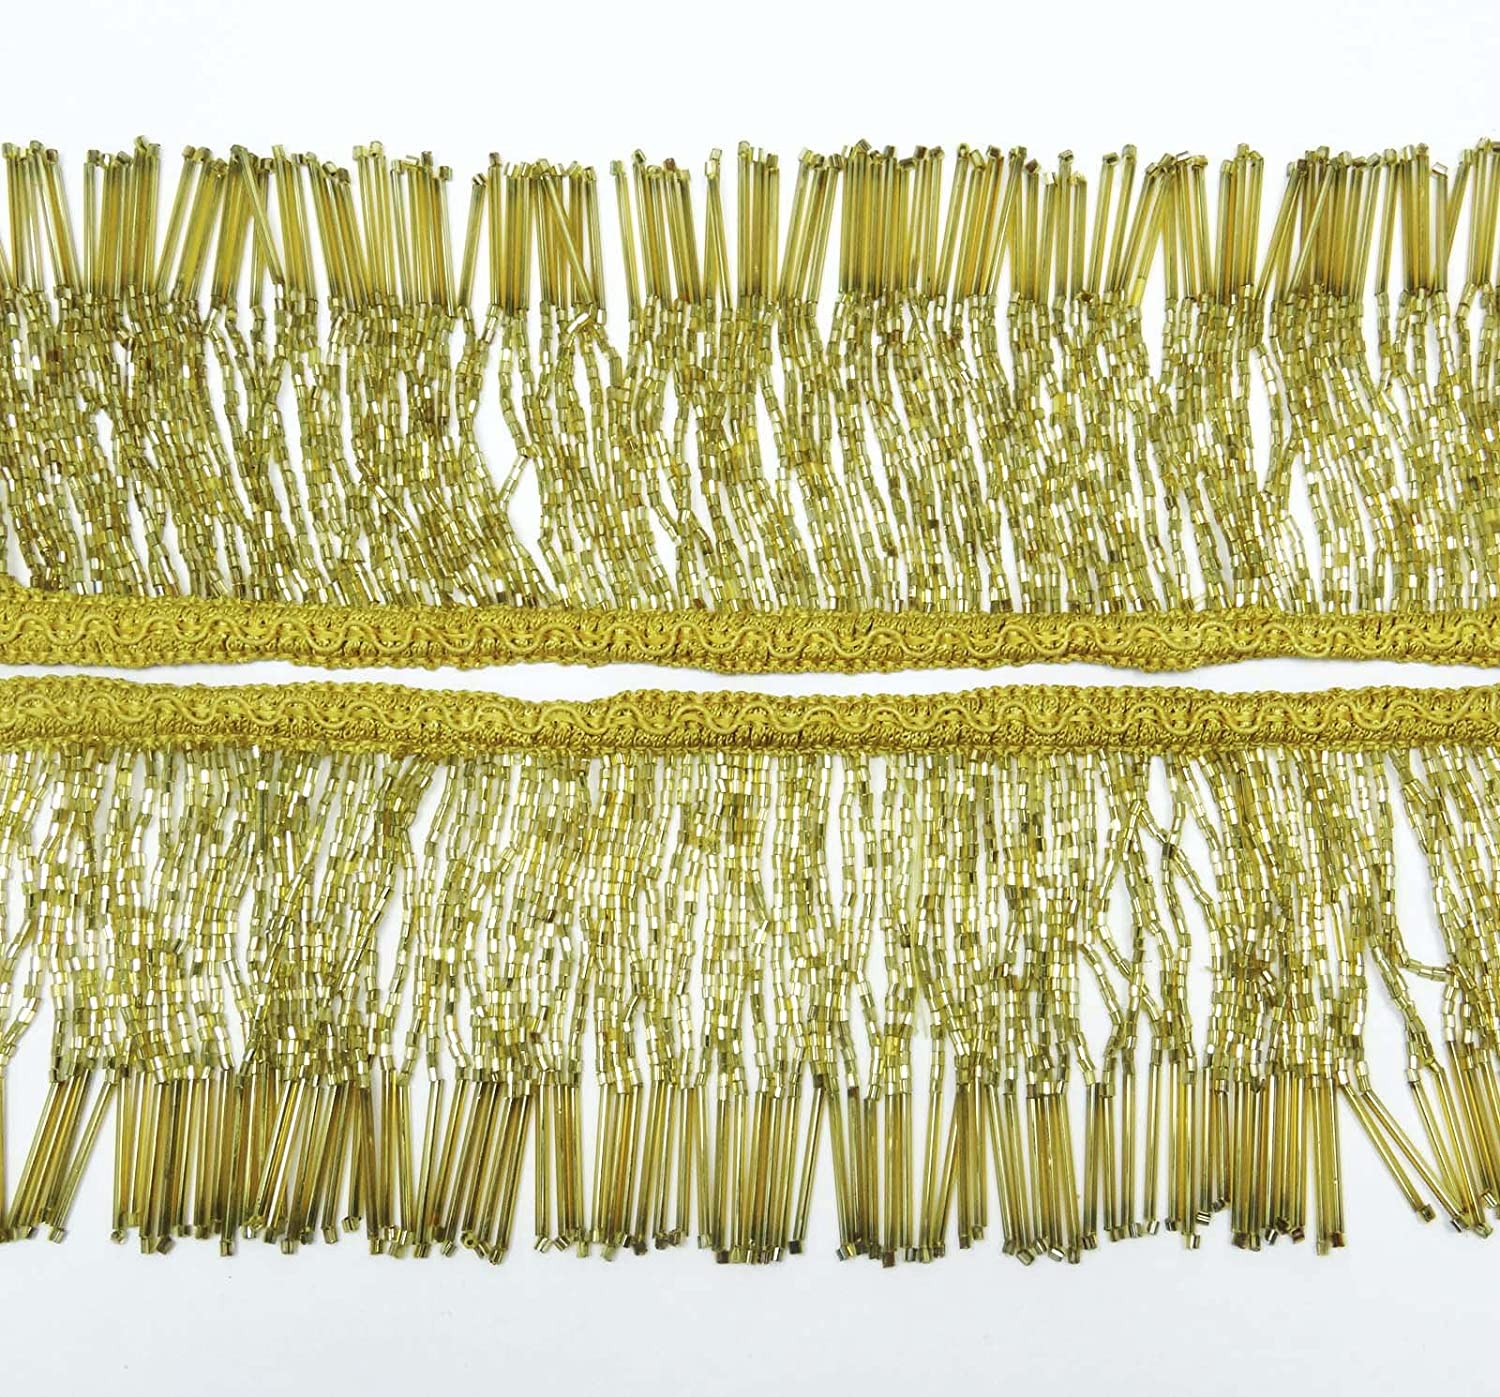 Knitwit Gold Beaded Fringe Decorative Upholstery Ribbon Curtain Craft Supplies 3 Yards